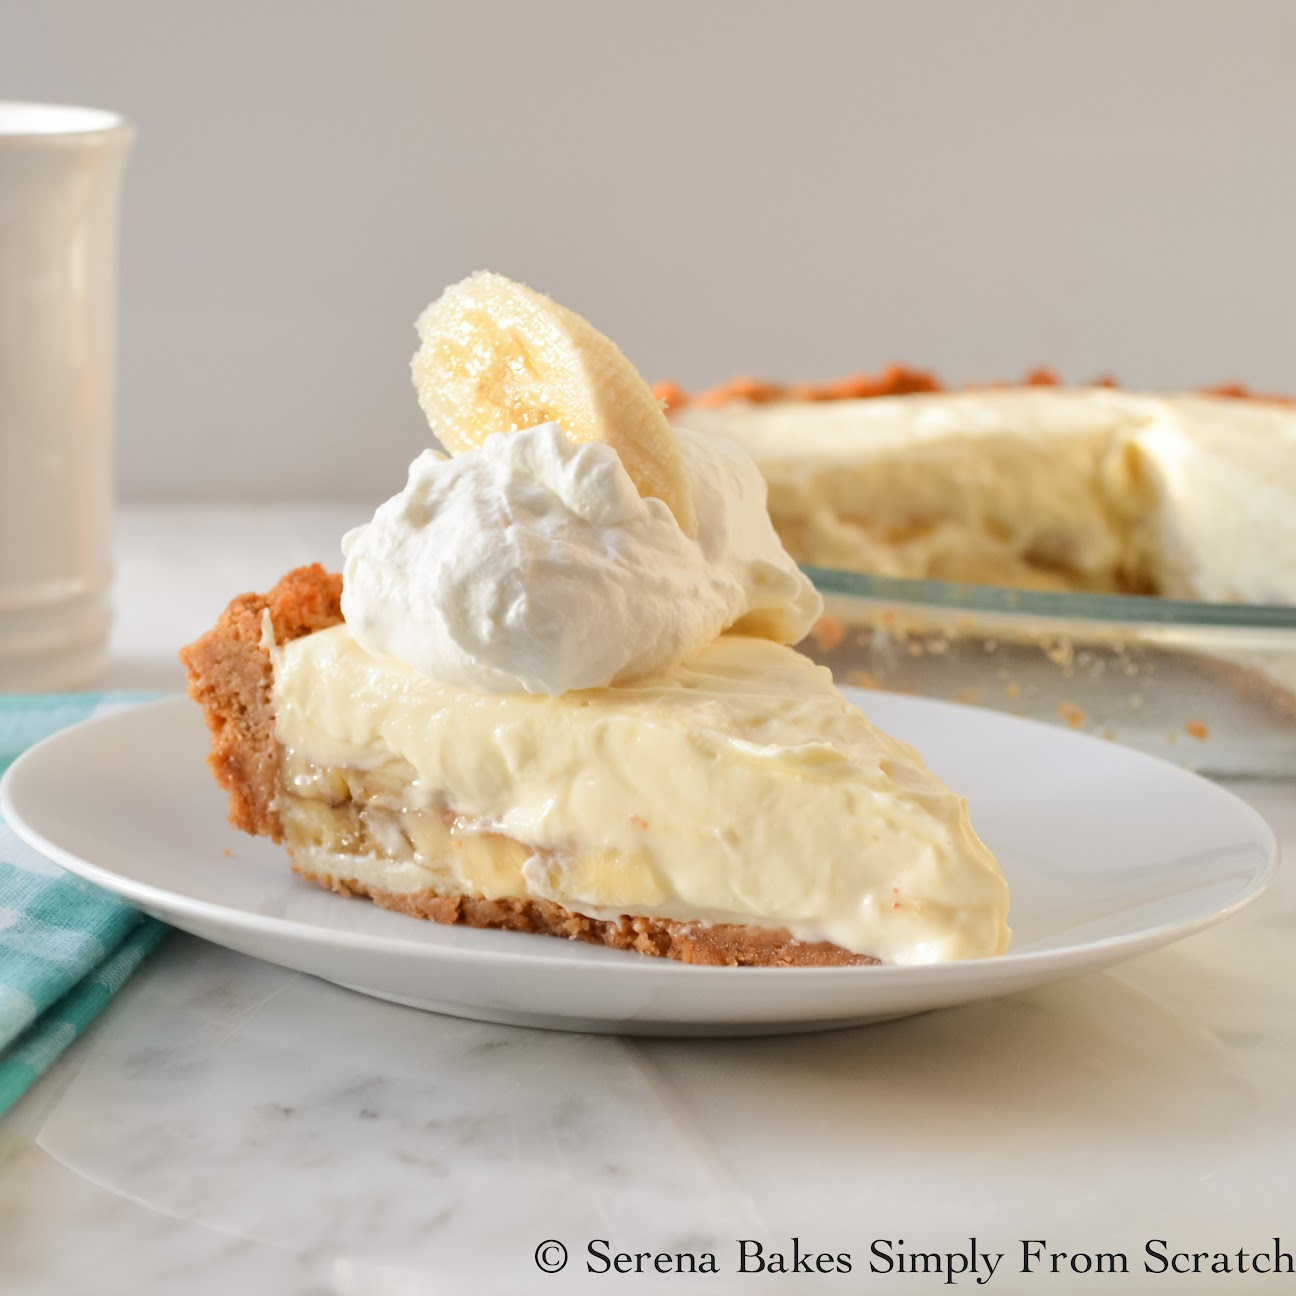 #1 Most Viewed Recipe Banana Pudding Cheesecake